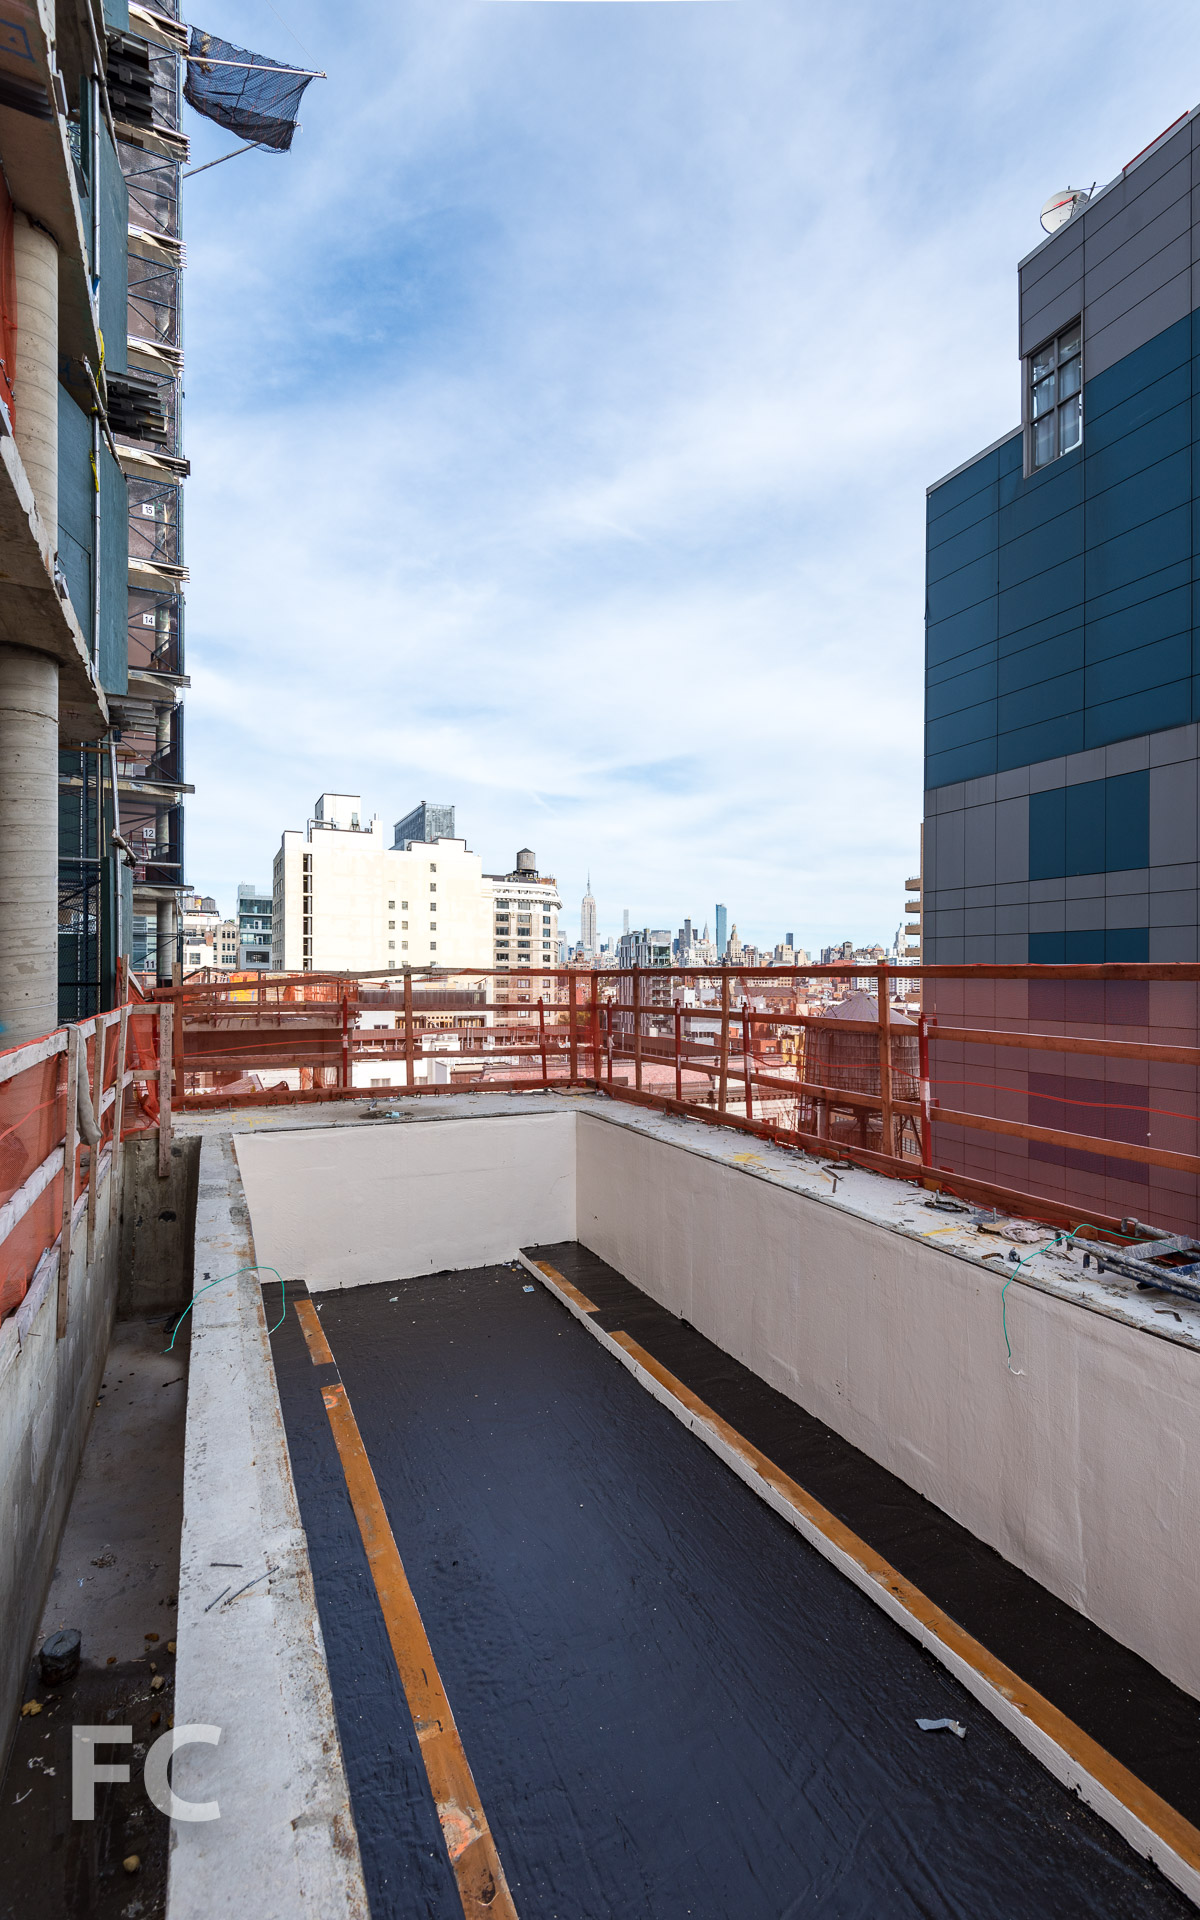 An outdoor pool under construction on the 11th floor terrace.